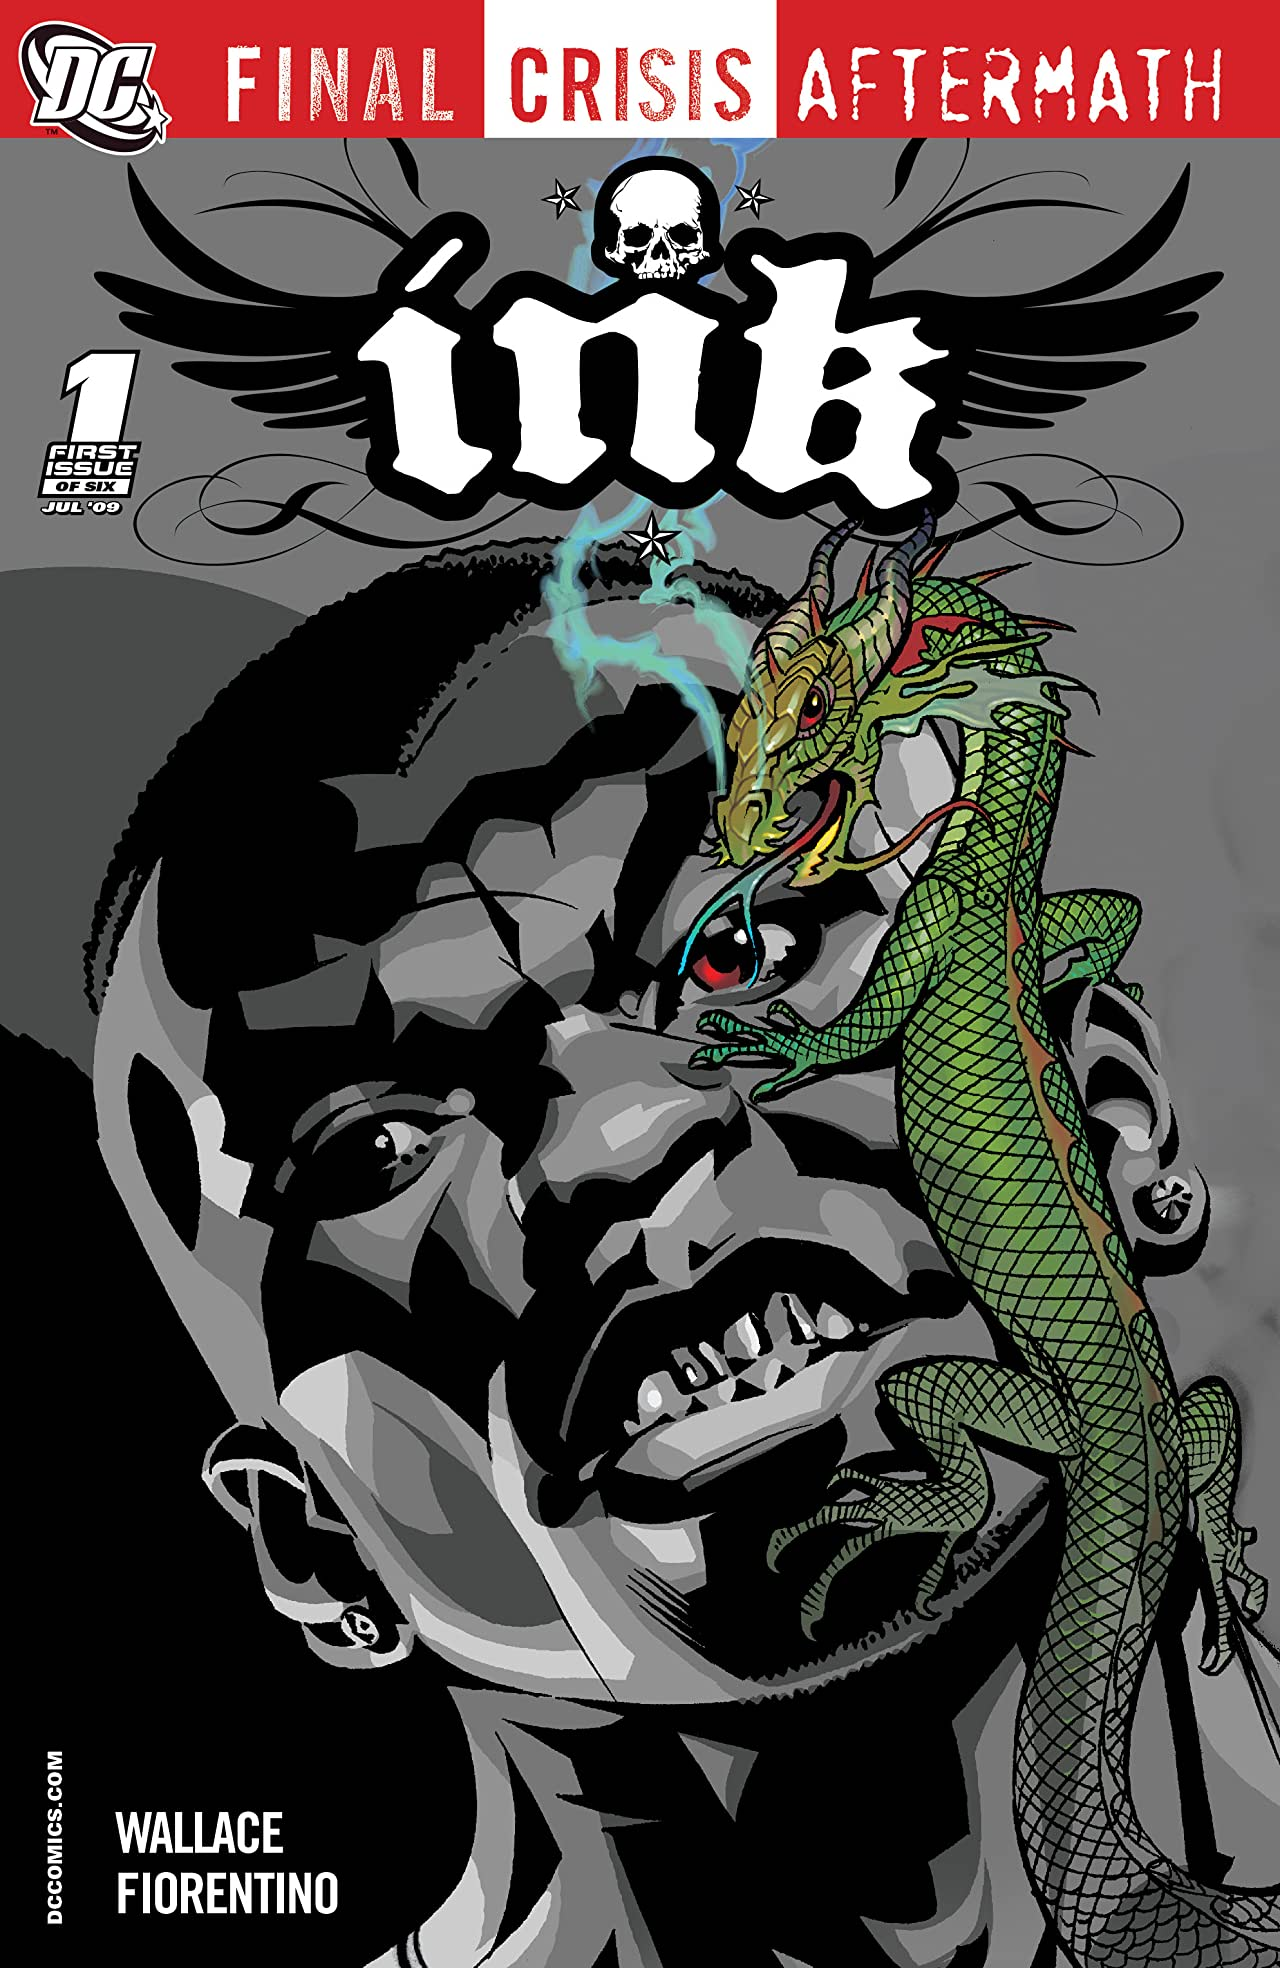 Final Crisis Aftermath: Ink (2009) #1